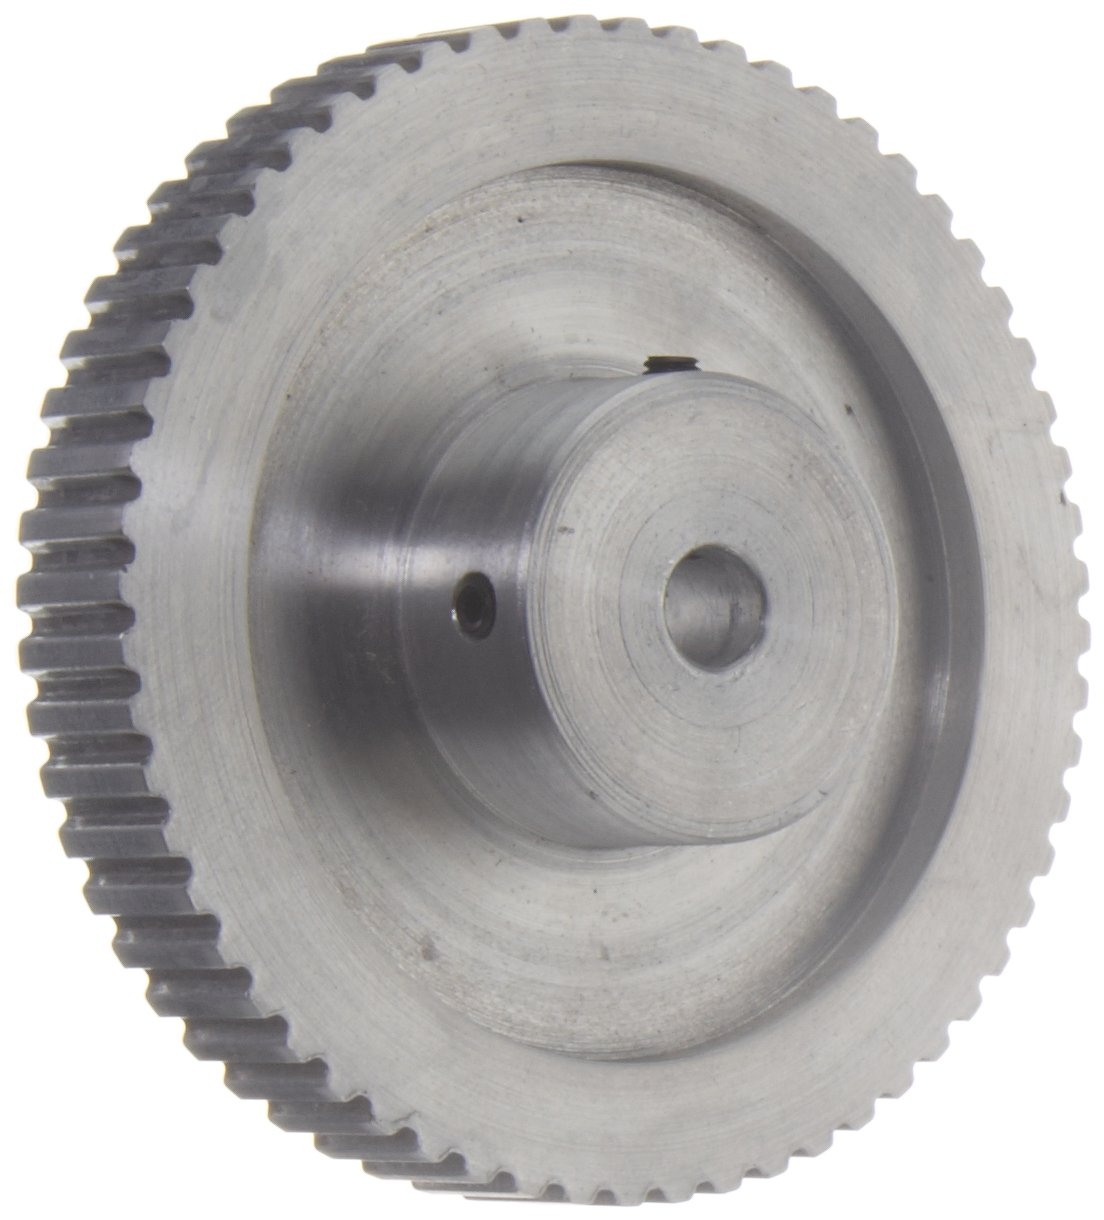 Gates PB60XL037 PowerGrip Aluminum Timing Pulley, 1/5'' Pitch, 60 Groove, 3.820'' Pitch Diameter, 3/8'' to 1'' Bore Range, For 1/4'' and 3/8'' Width Belt